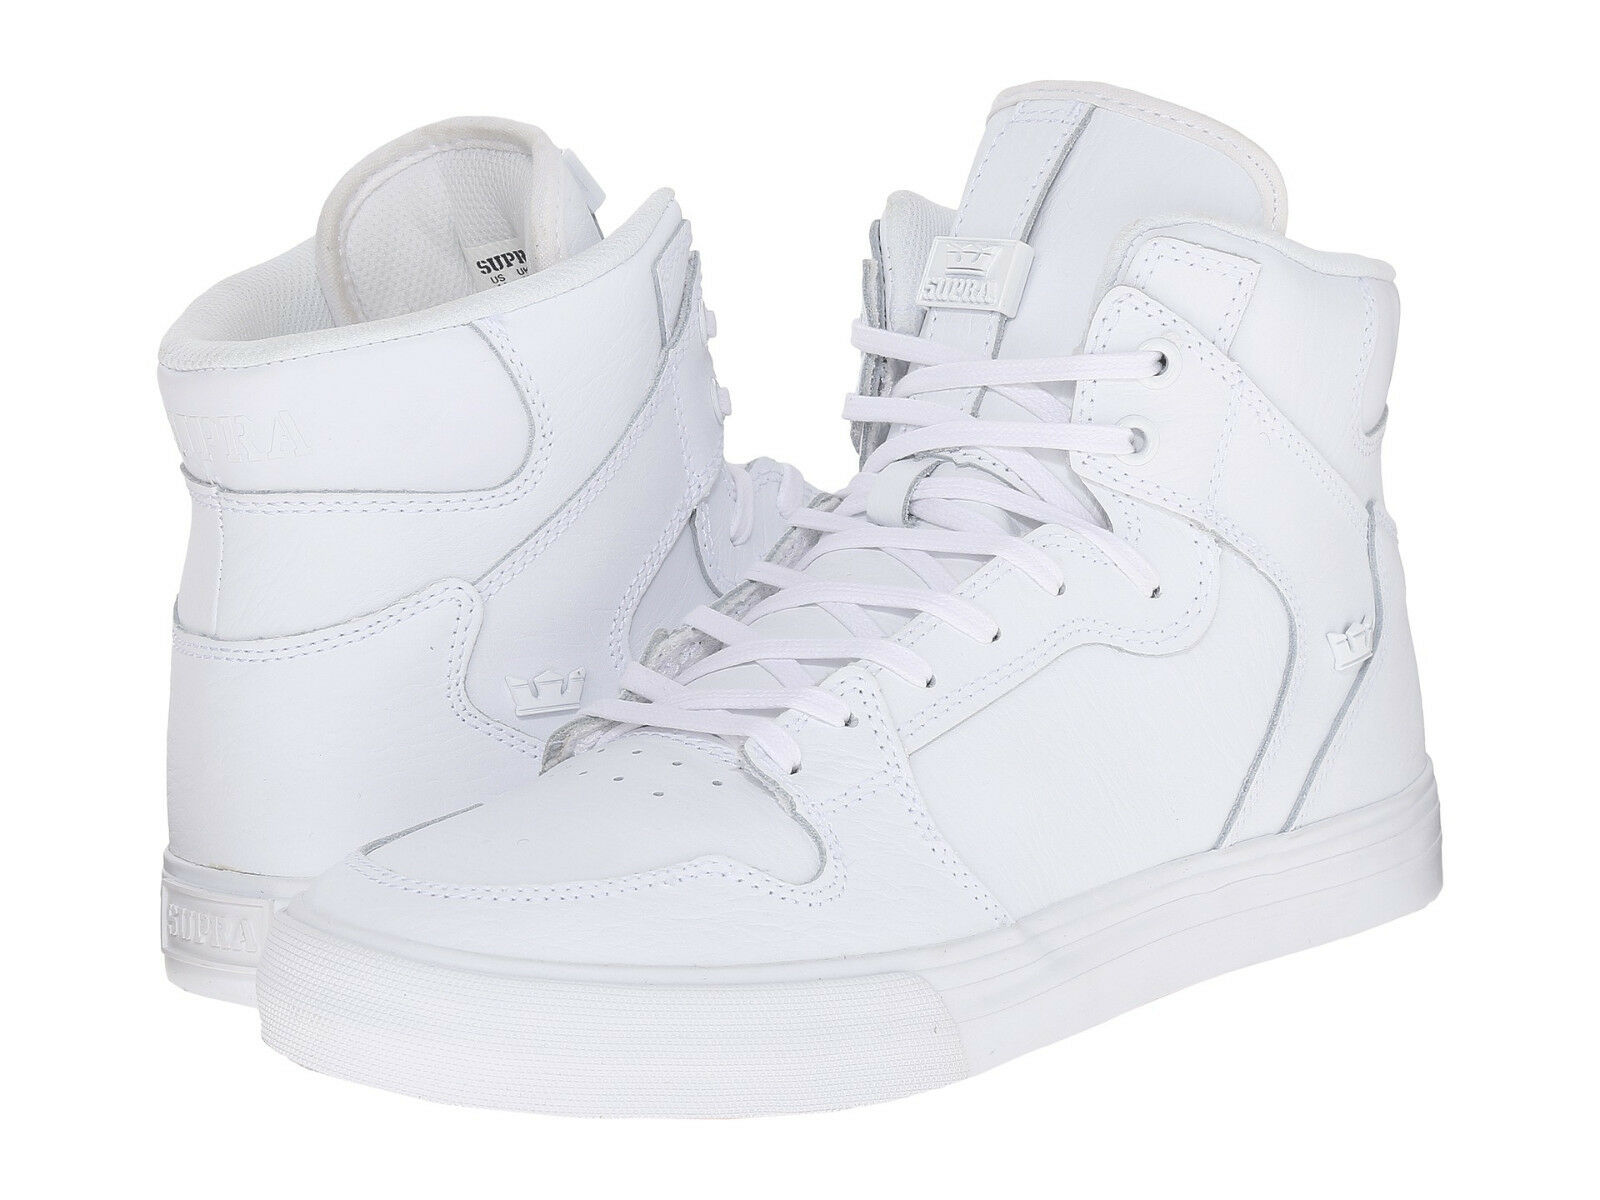 NEW NEW SUPRA VAIDER WHITE WHITE LEATHER SURF SNOW SKATEBOARD SPORTS SHOES 12 Scarpe classiche da uomo